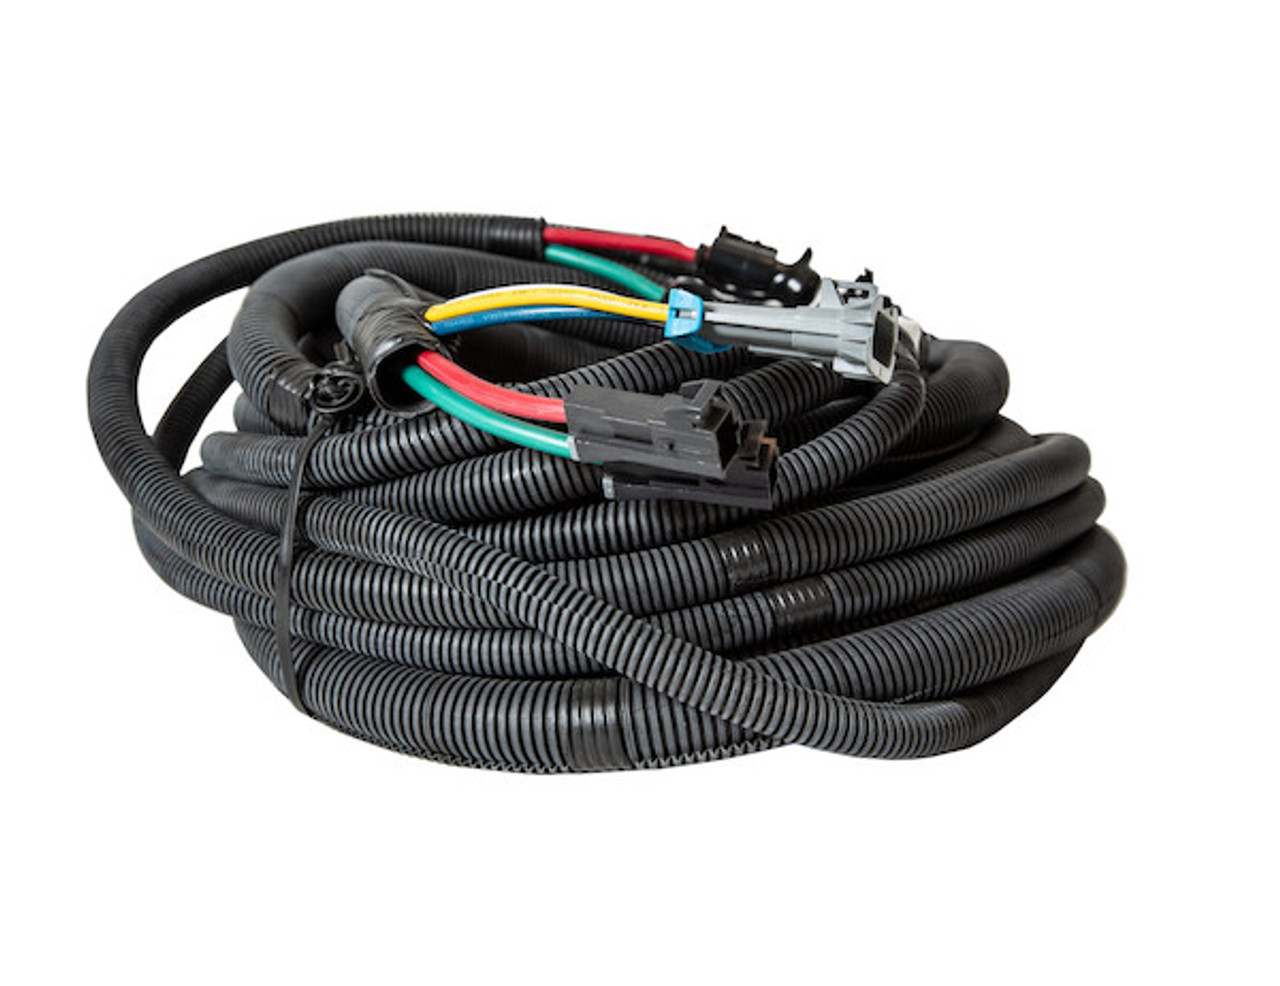 BUYERS 3016944 Replacement Main Wire Harness With 2-Pin Spinner Connector For SaltDogg Salt Spreaders 1